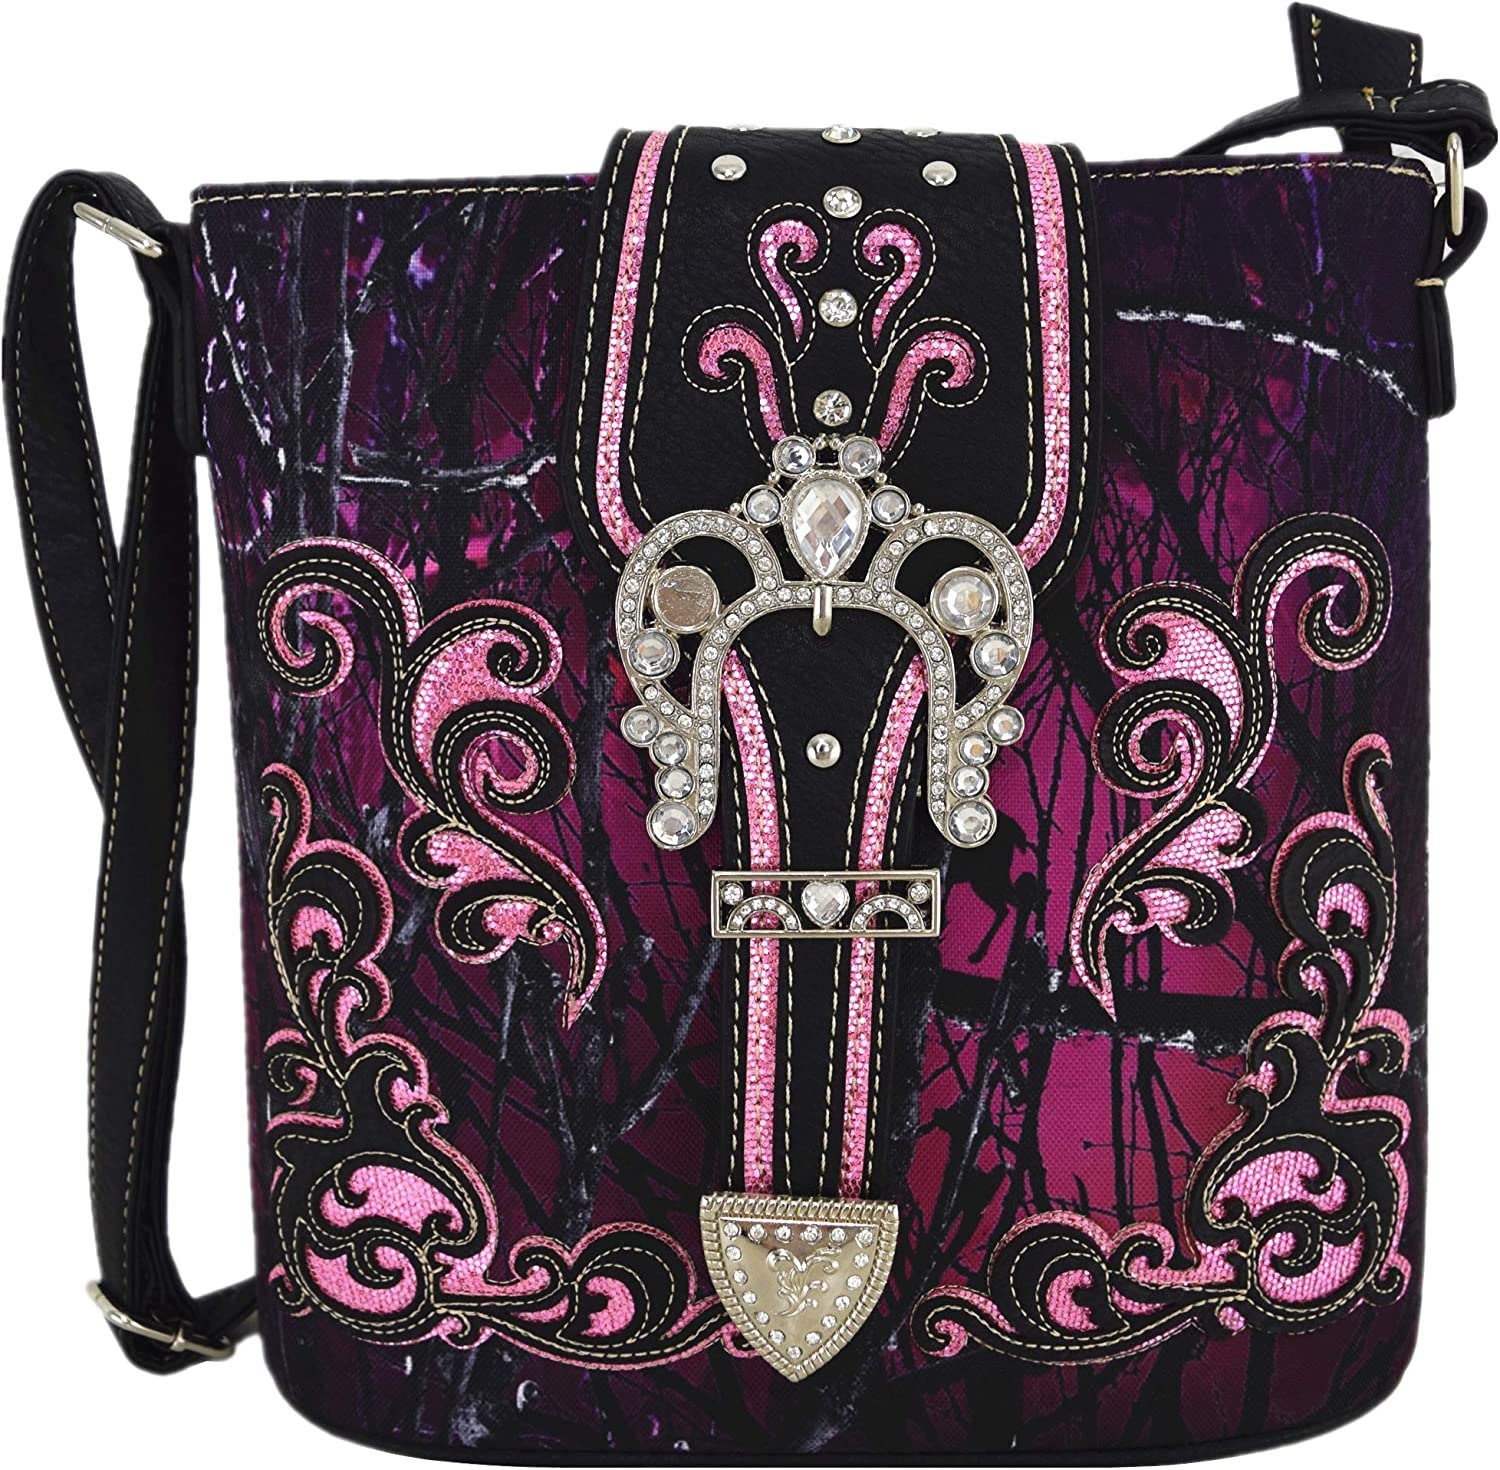 Camouflage Rhinestone Western Cross Save money Max 41% OFF Body Concealed Carr Handbags